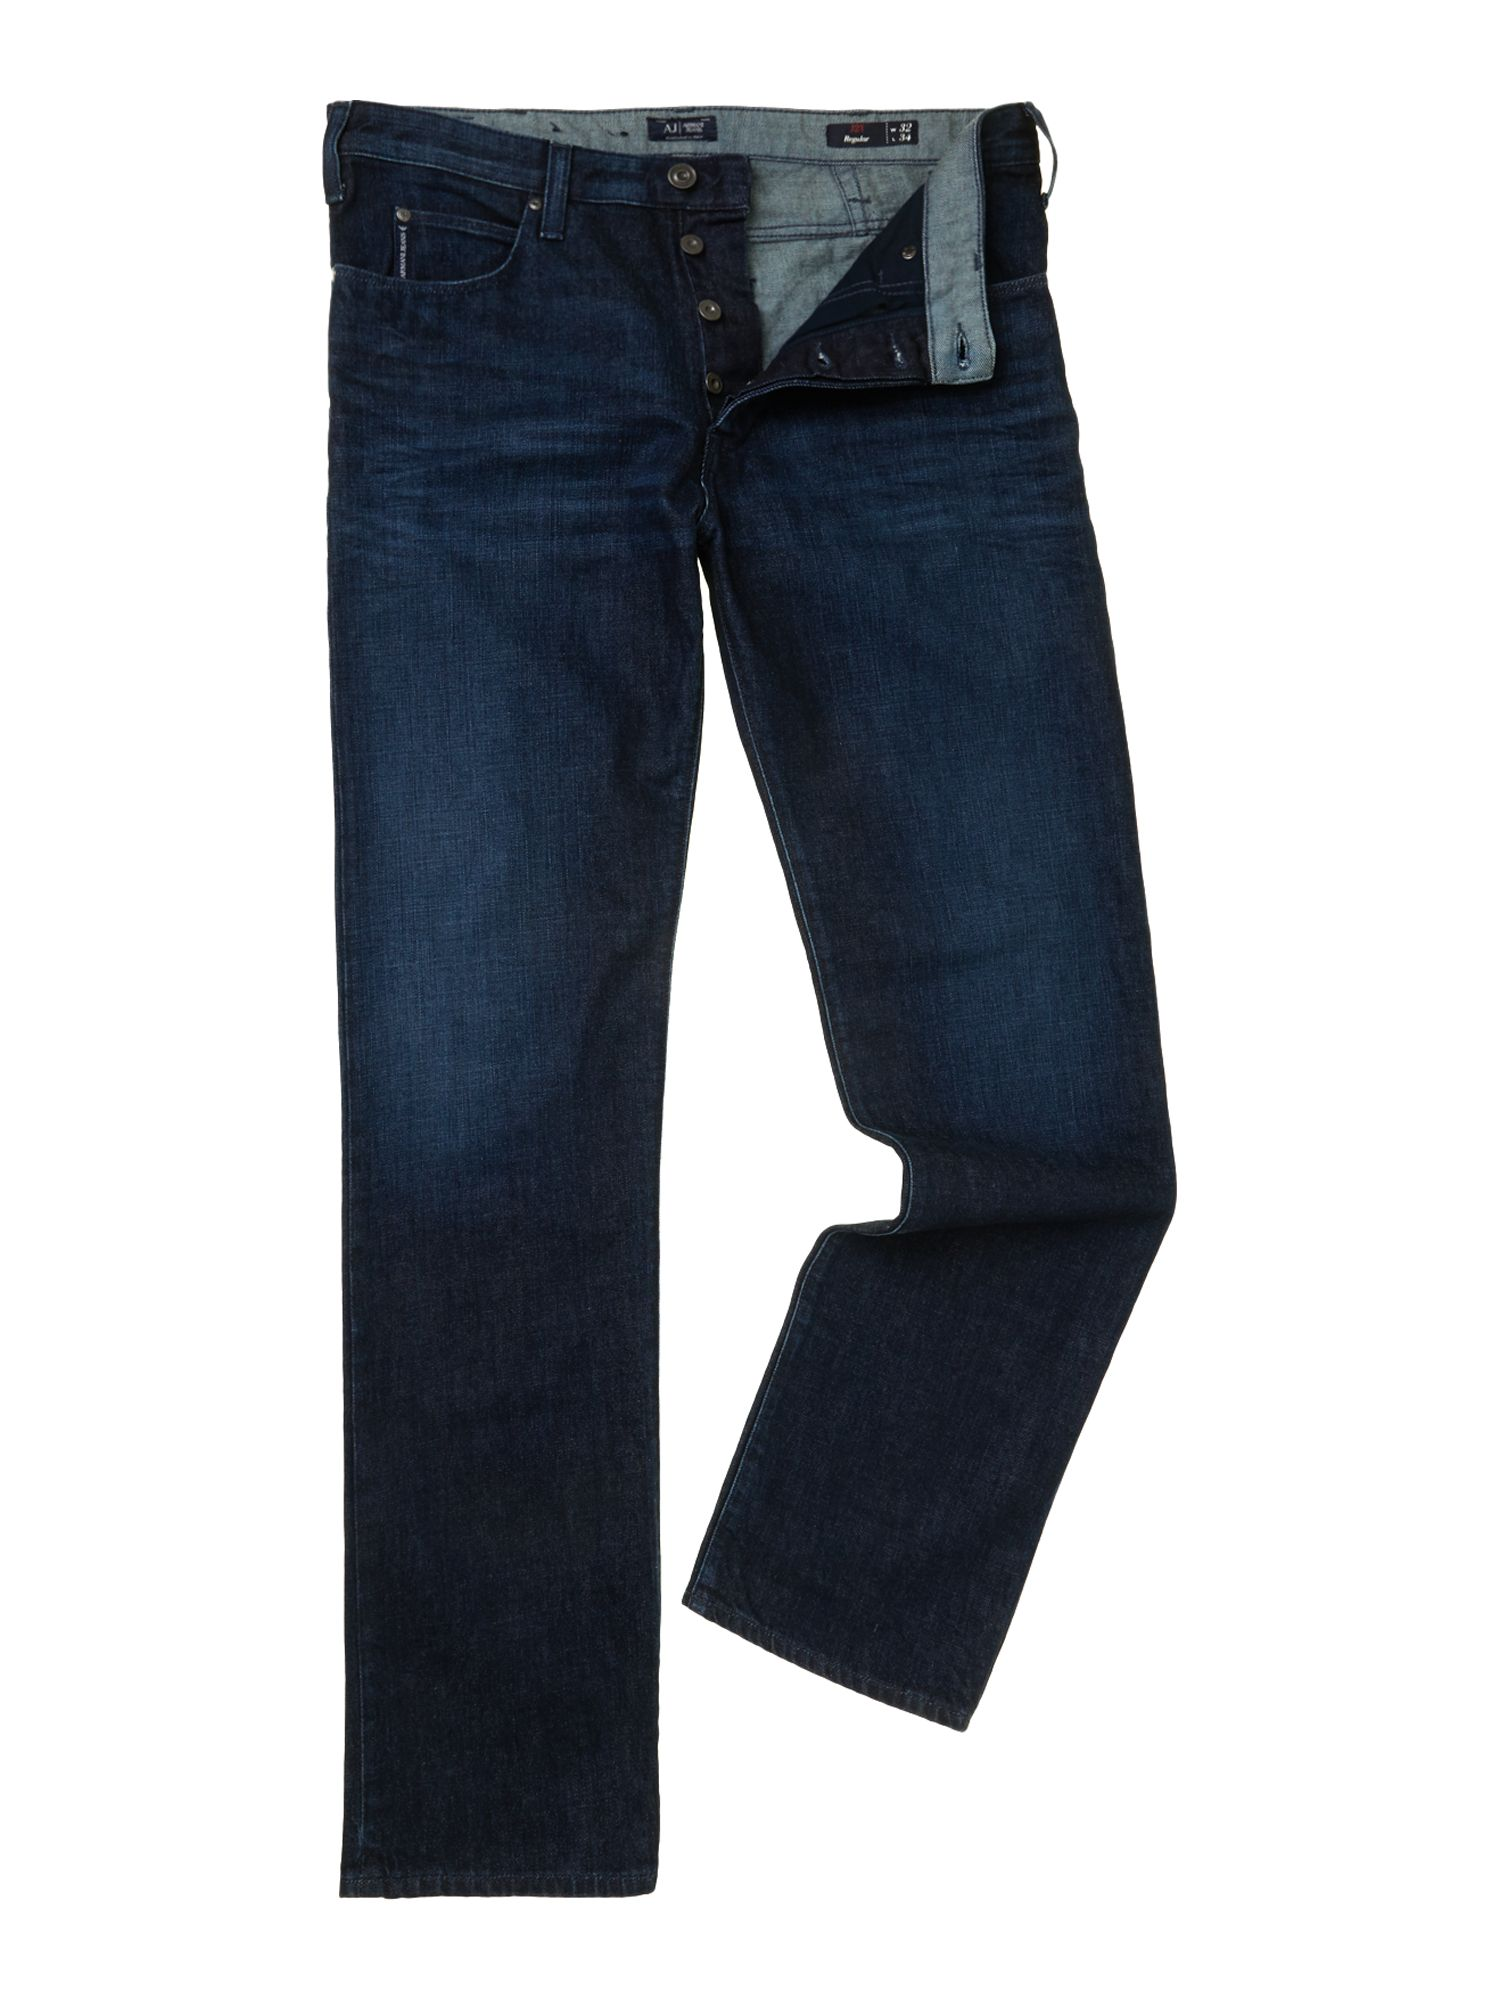 J21 regular fit blue wash jeans